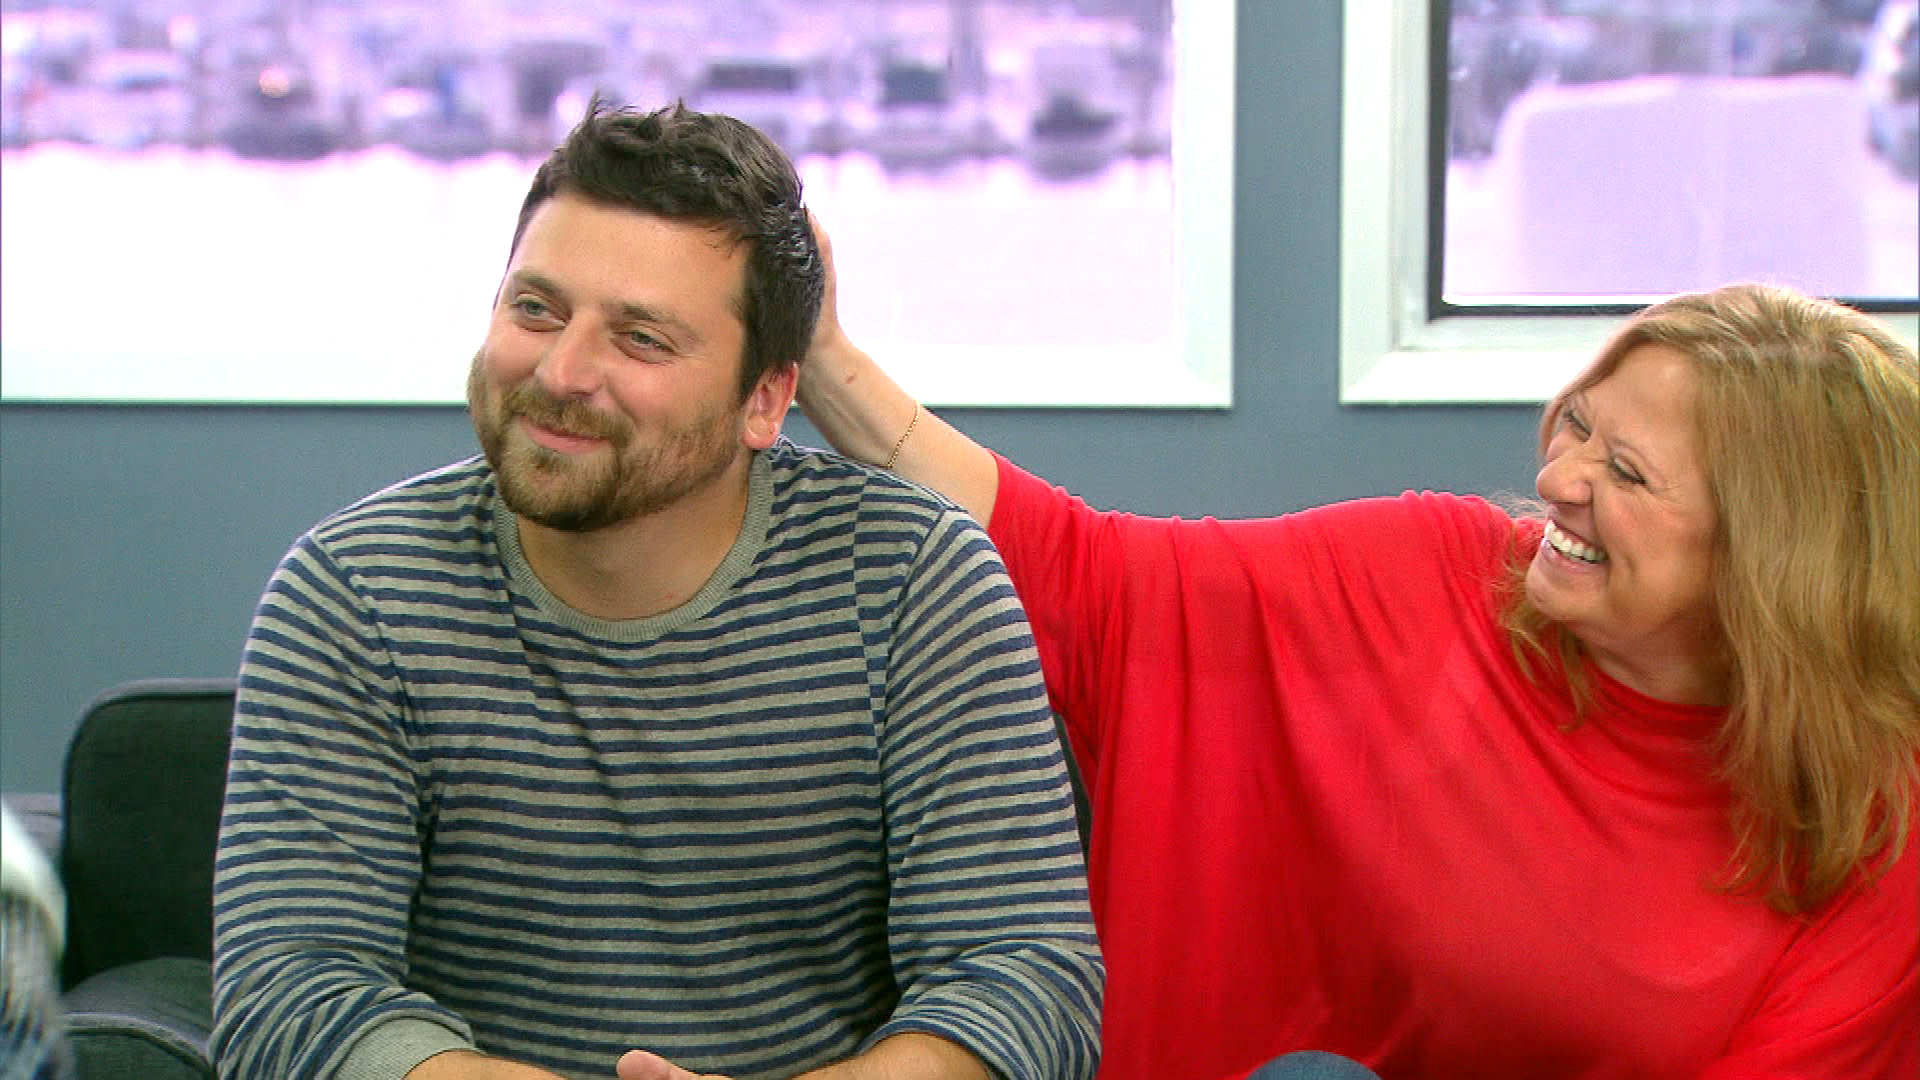 Chris Manzo Talks Stimulation. . .With His Mom